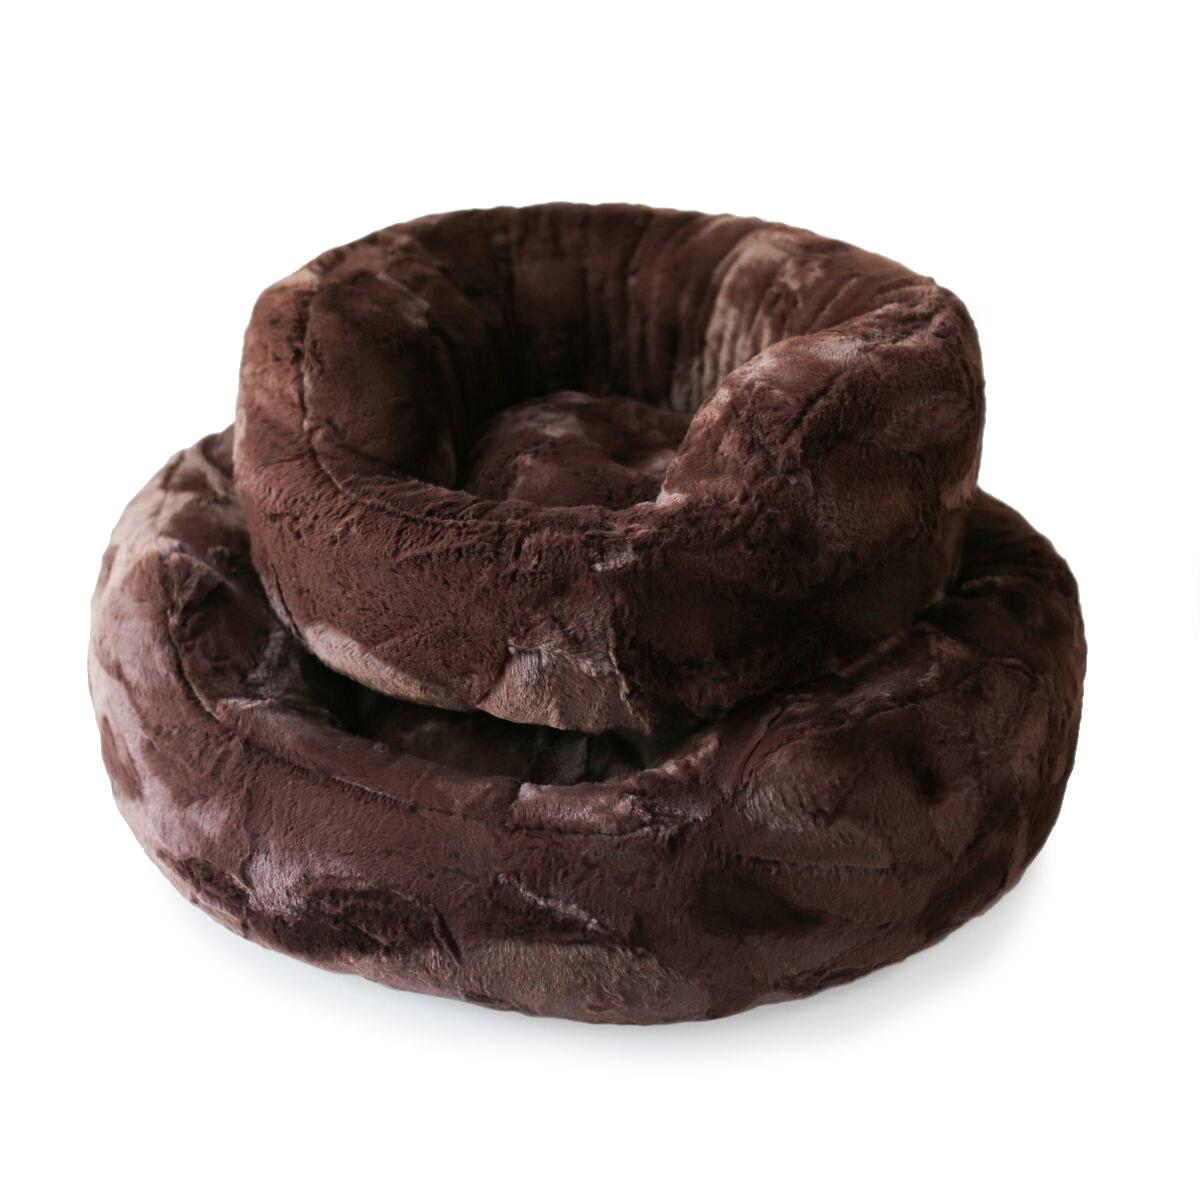 Amour Dog Bed by Hello Doggie - Chocolate